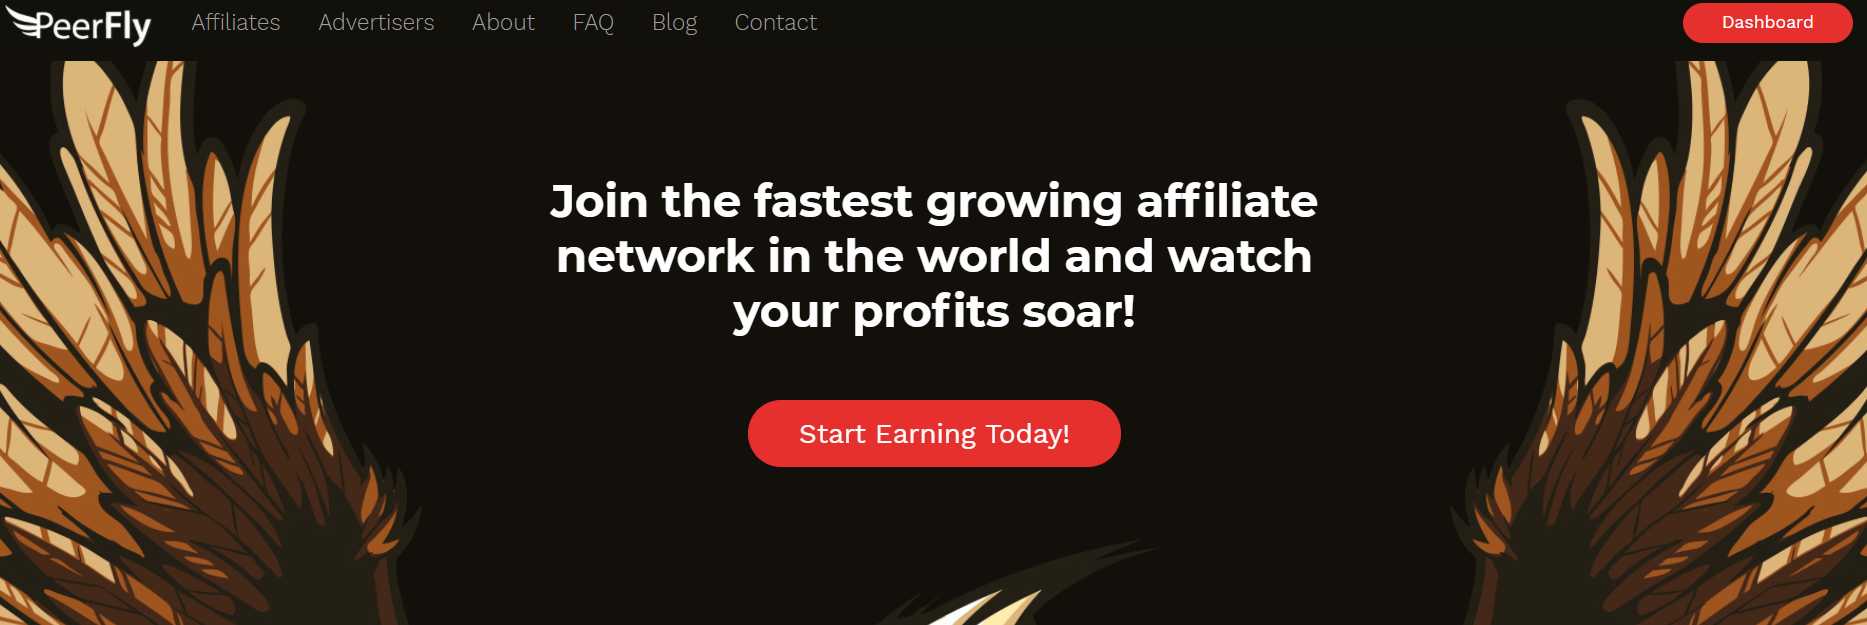 PeerFly- Clickbank Alternatives